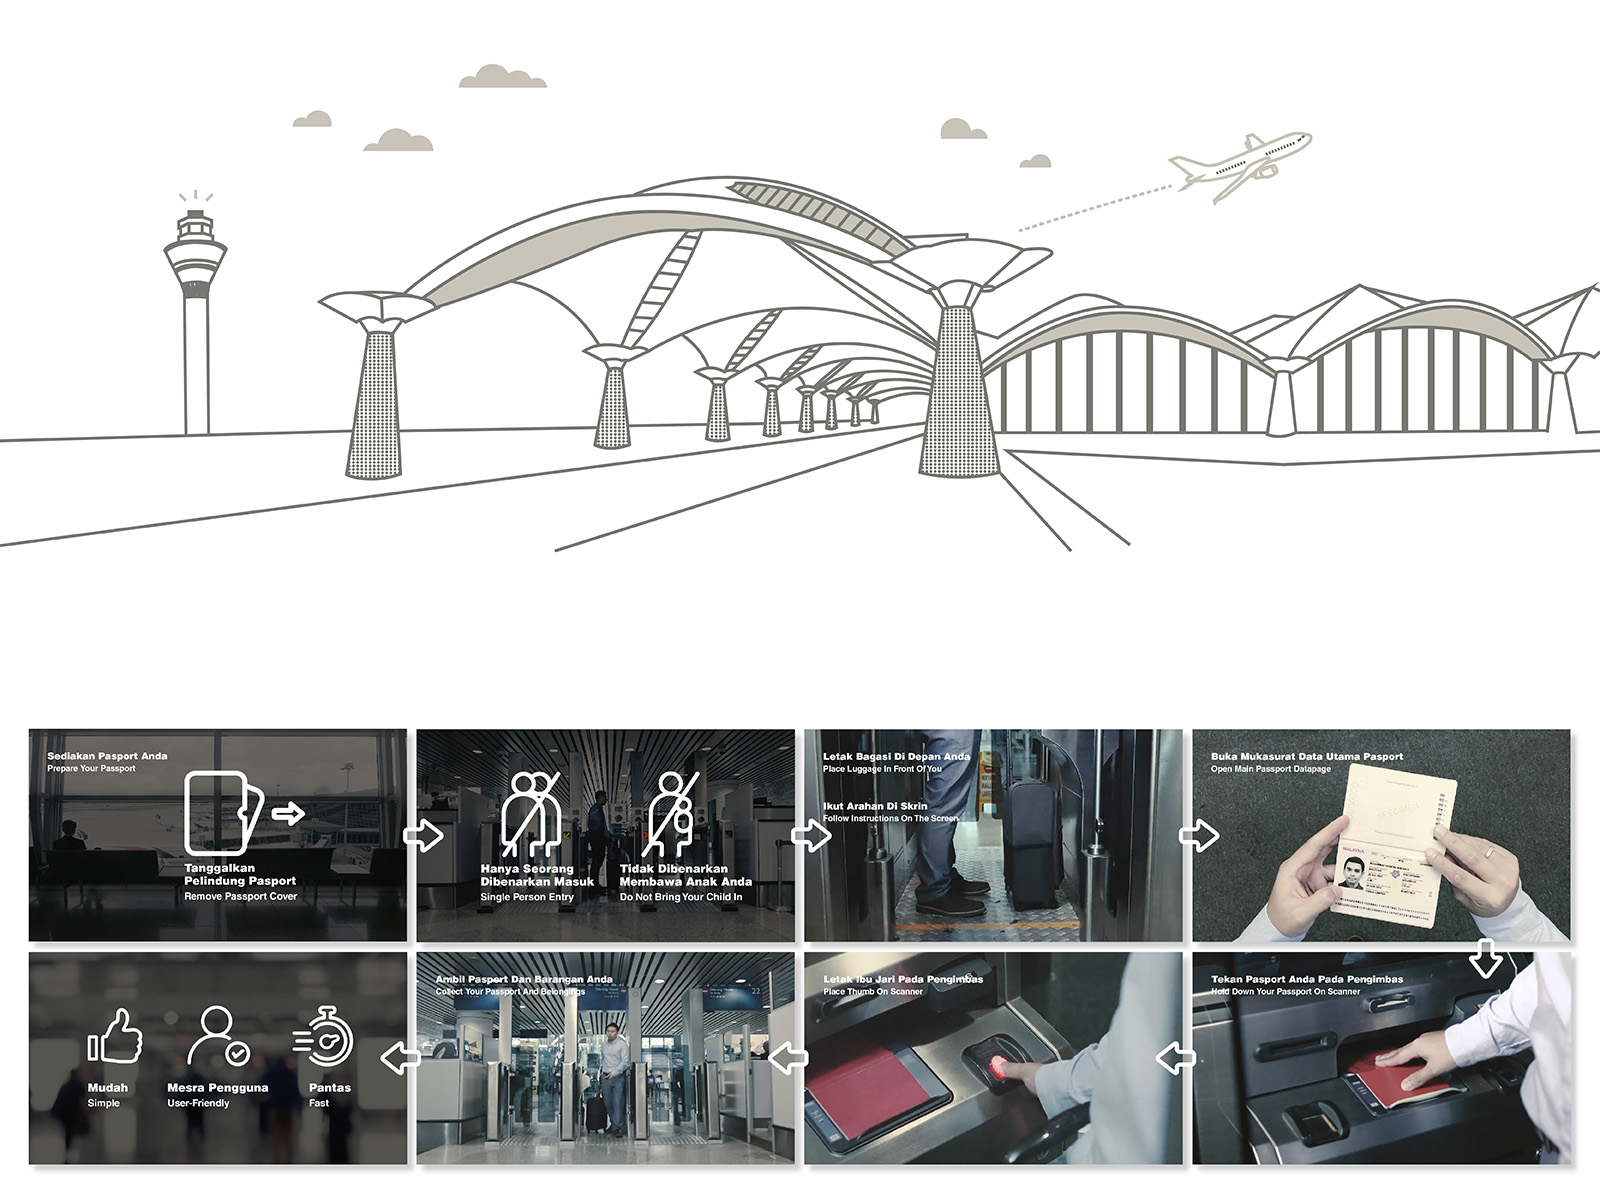 Illustration of KLIA with video screenshots showing the steps to verify passport automatically at the e-Gate and what not to do